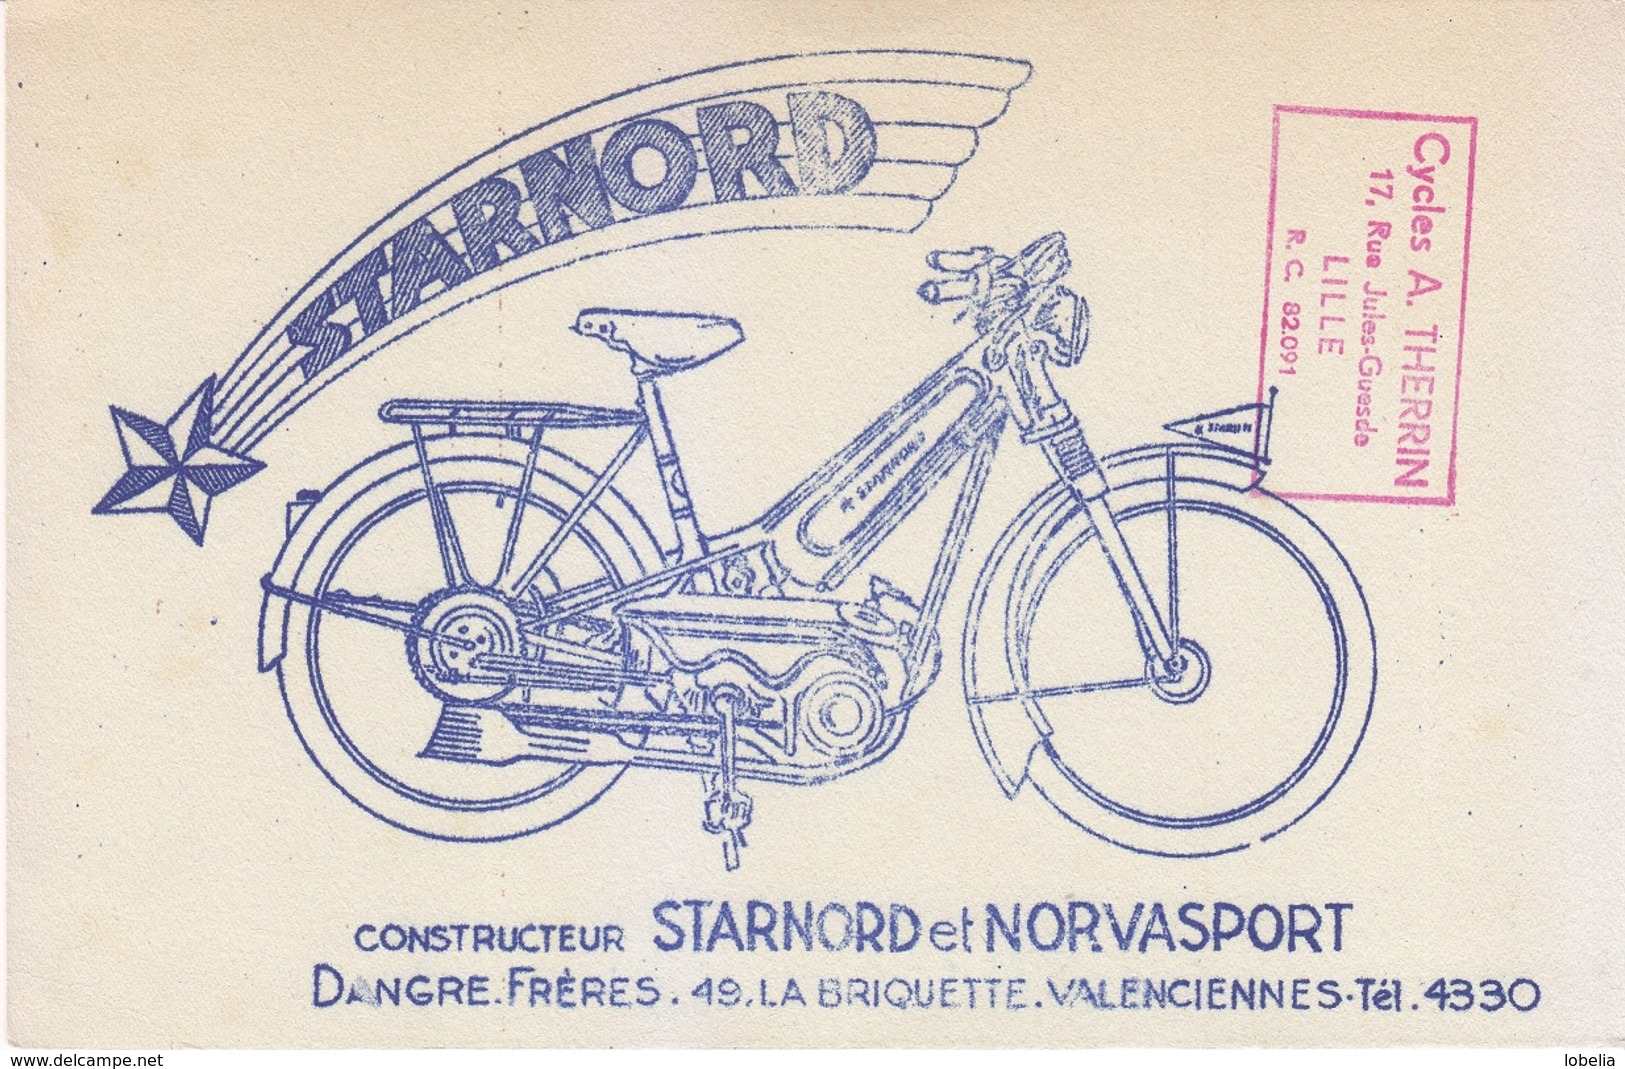 Buvard STARNORD NERVASPORT Dangre Frères Valenciennes, Cachet Cycles A. Therrin Rue Jules Guesde Lille - Moto & Vélo